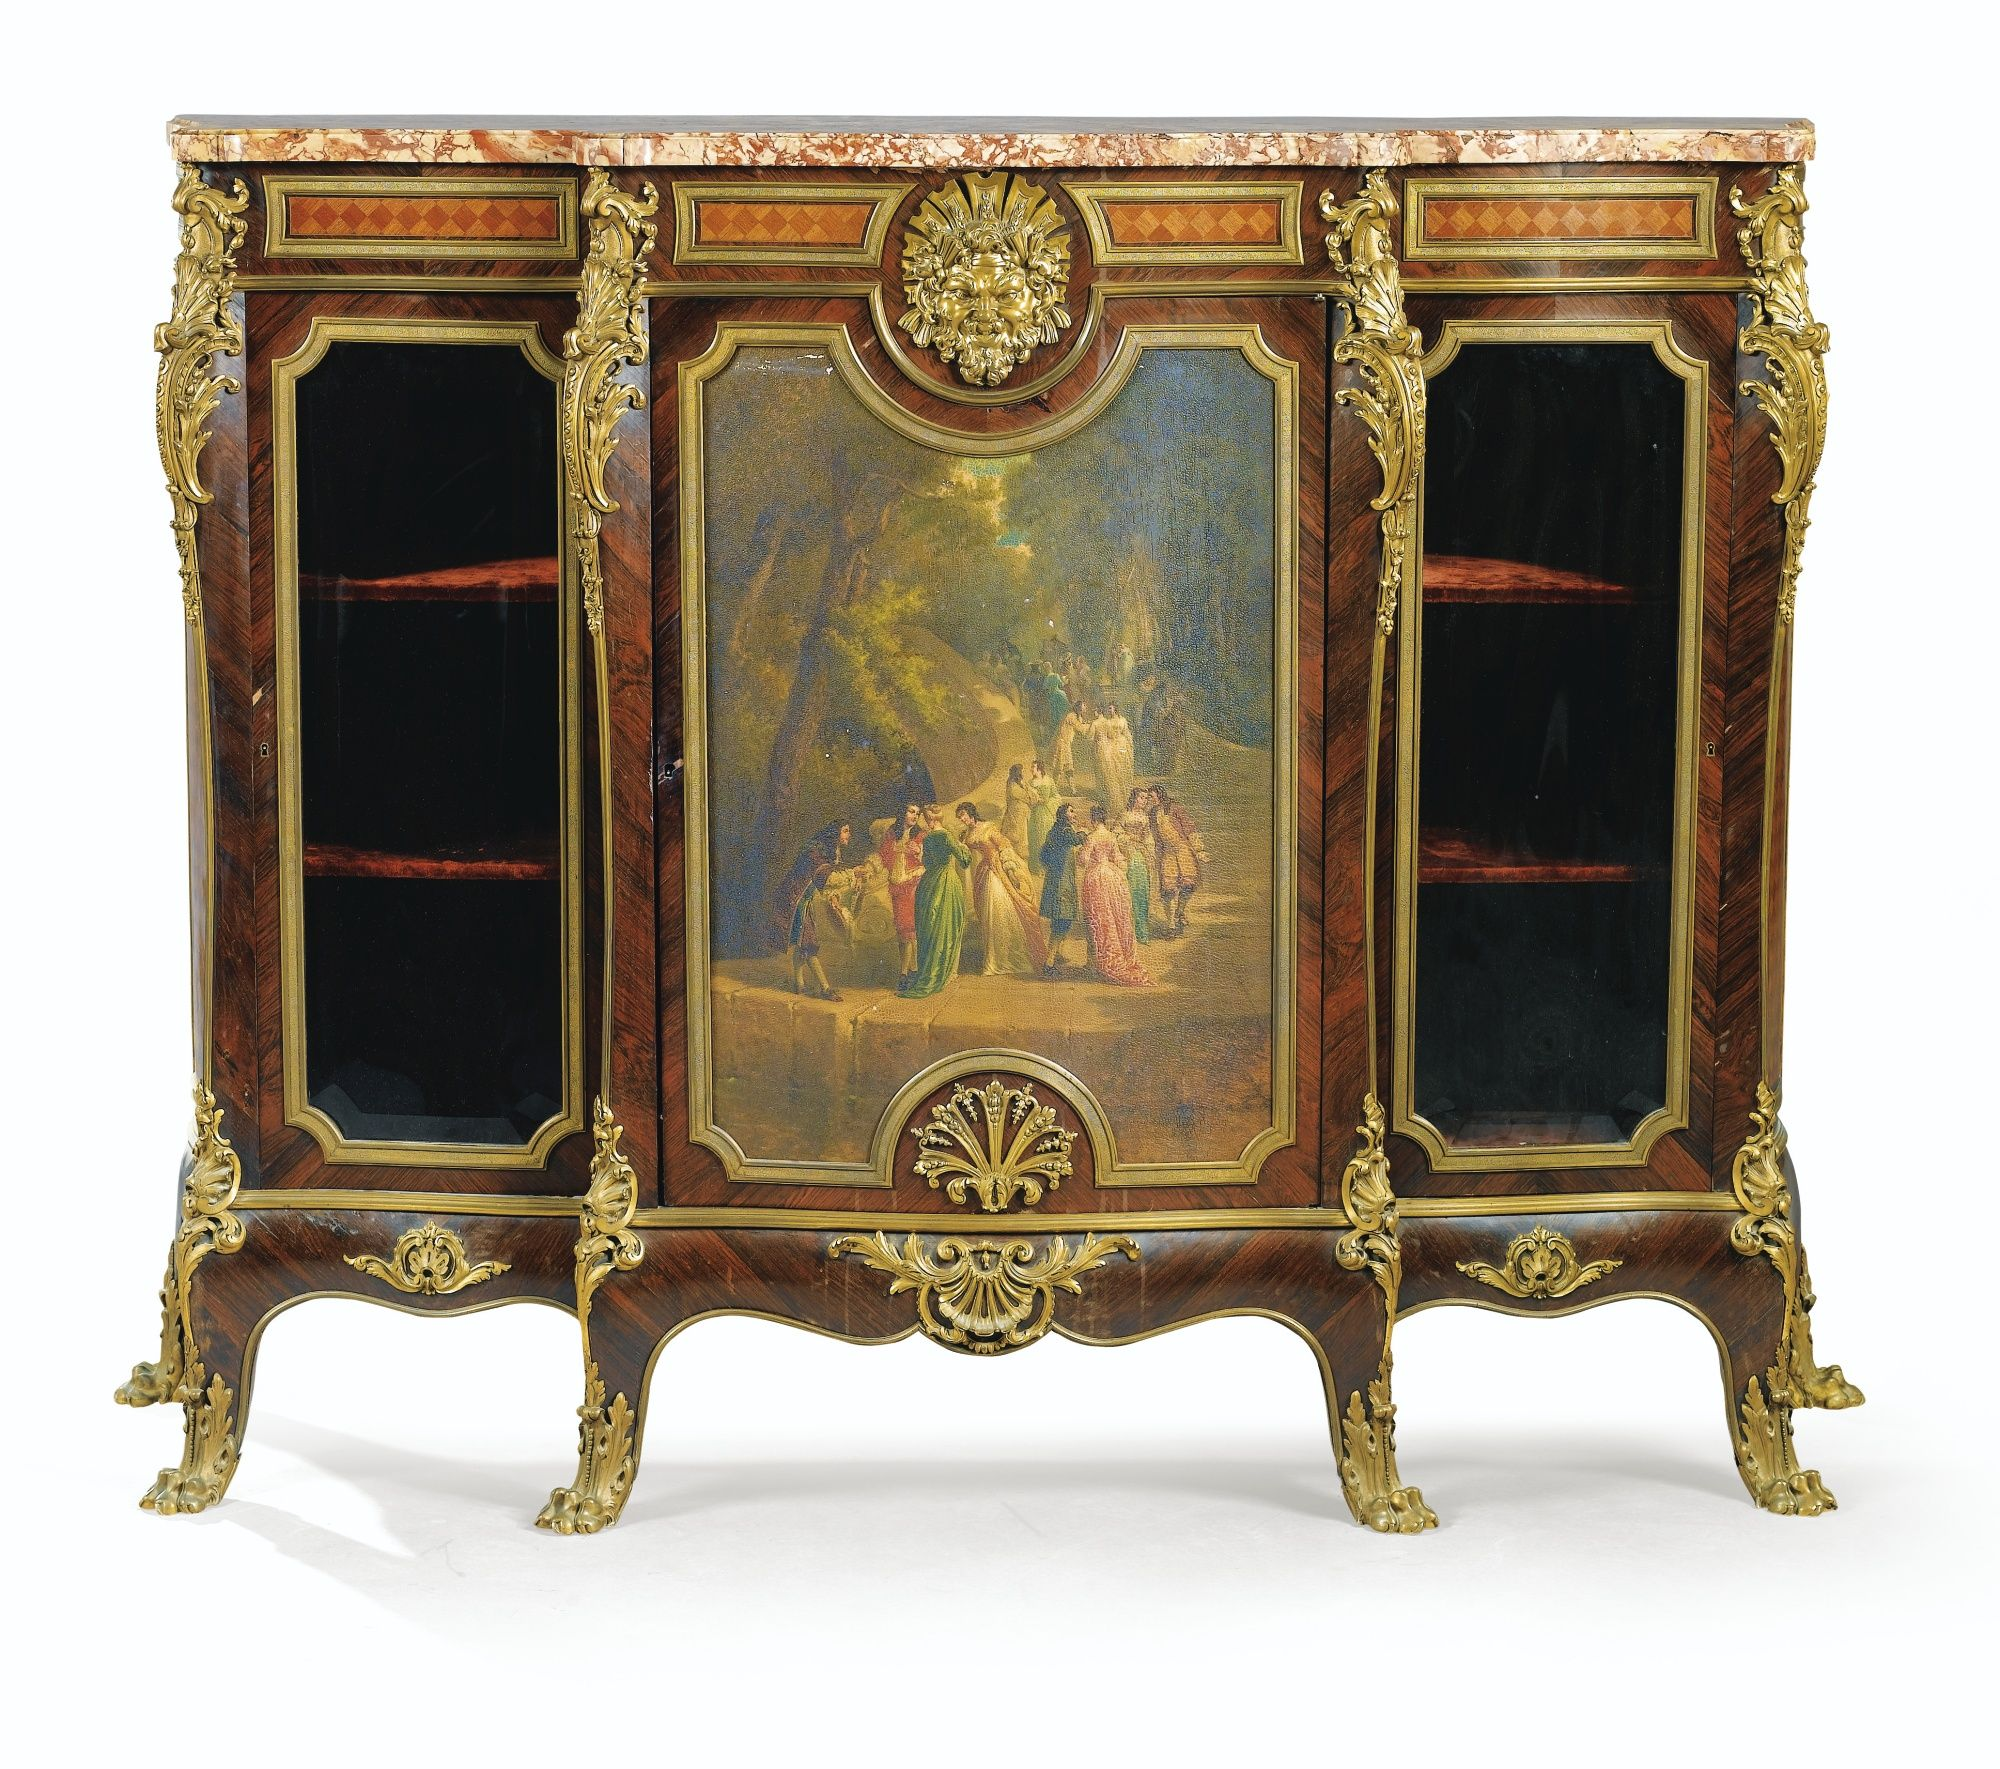 A gilt bronze mounted parquetry and painted pannel - Muebles antiguos franceses ...